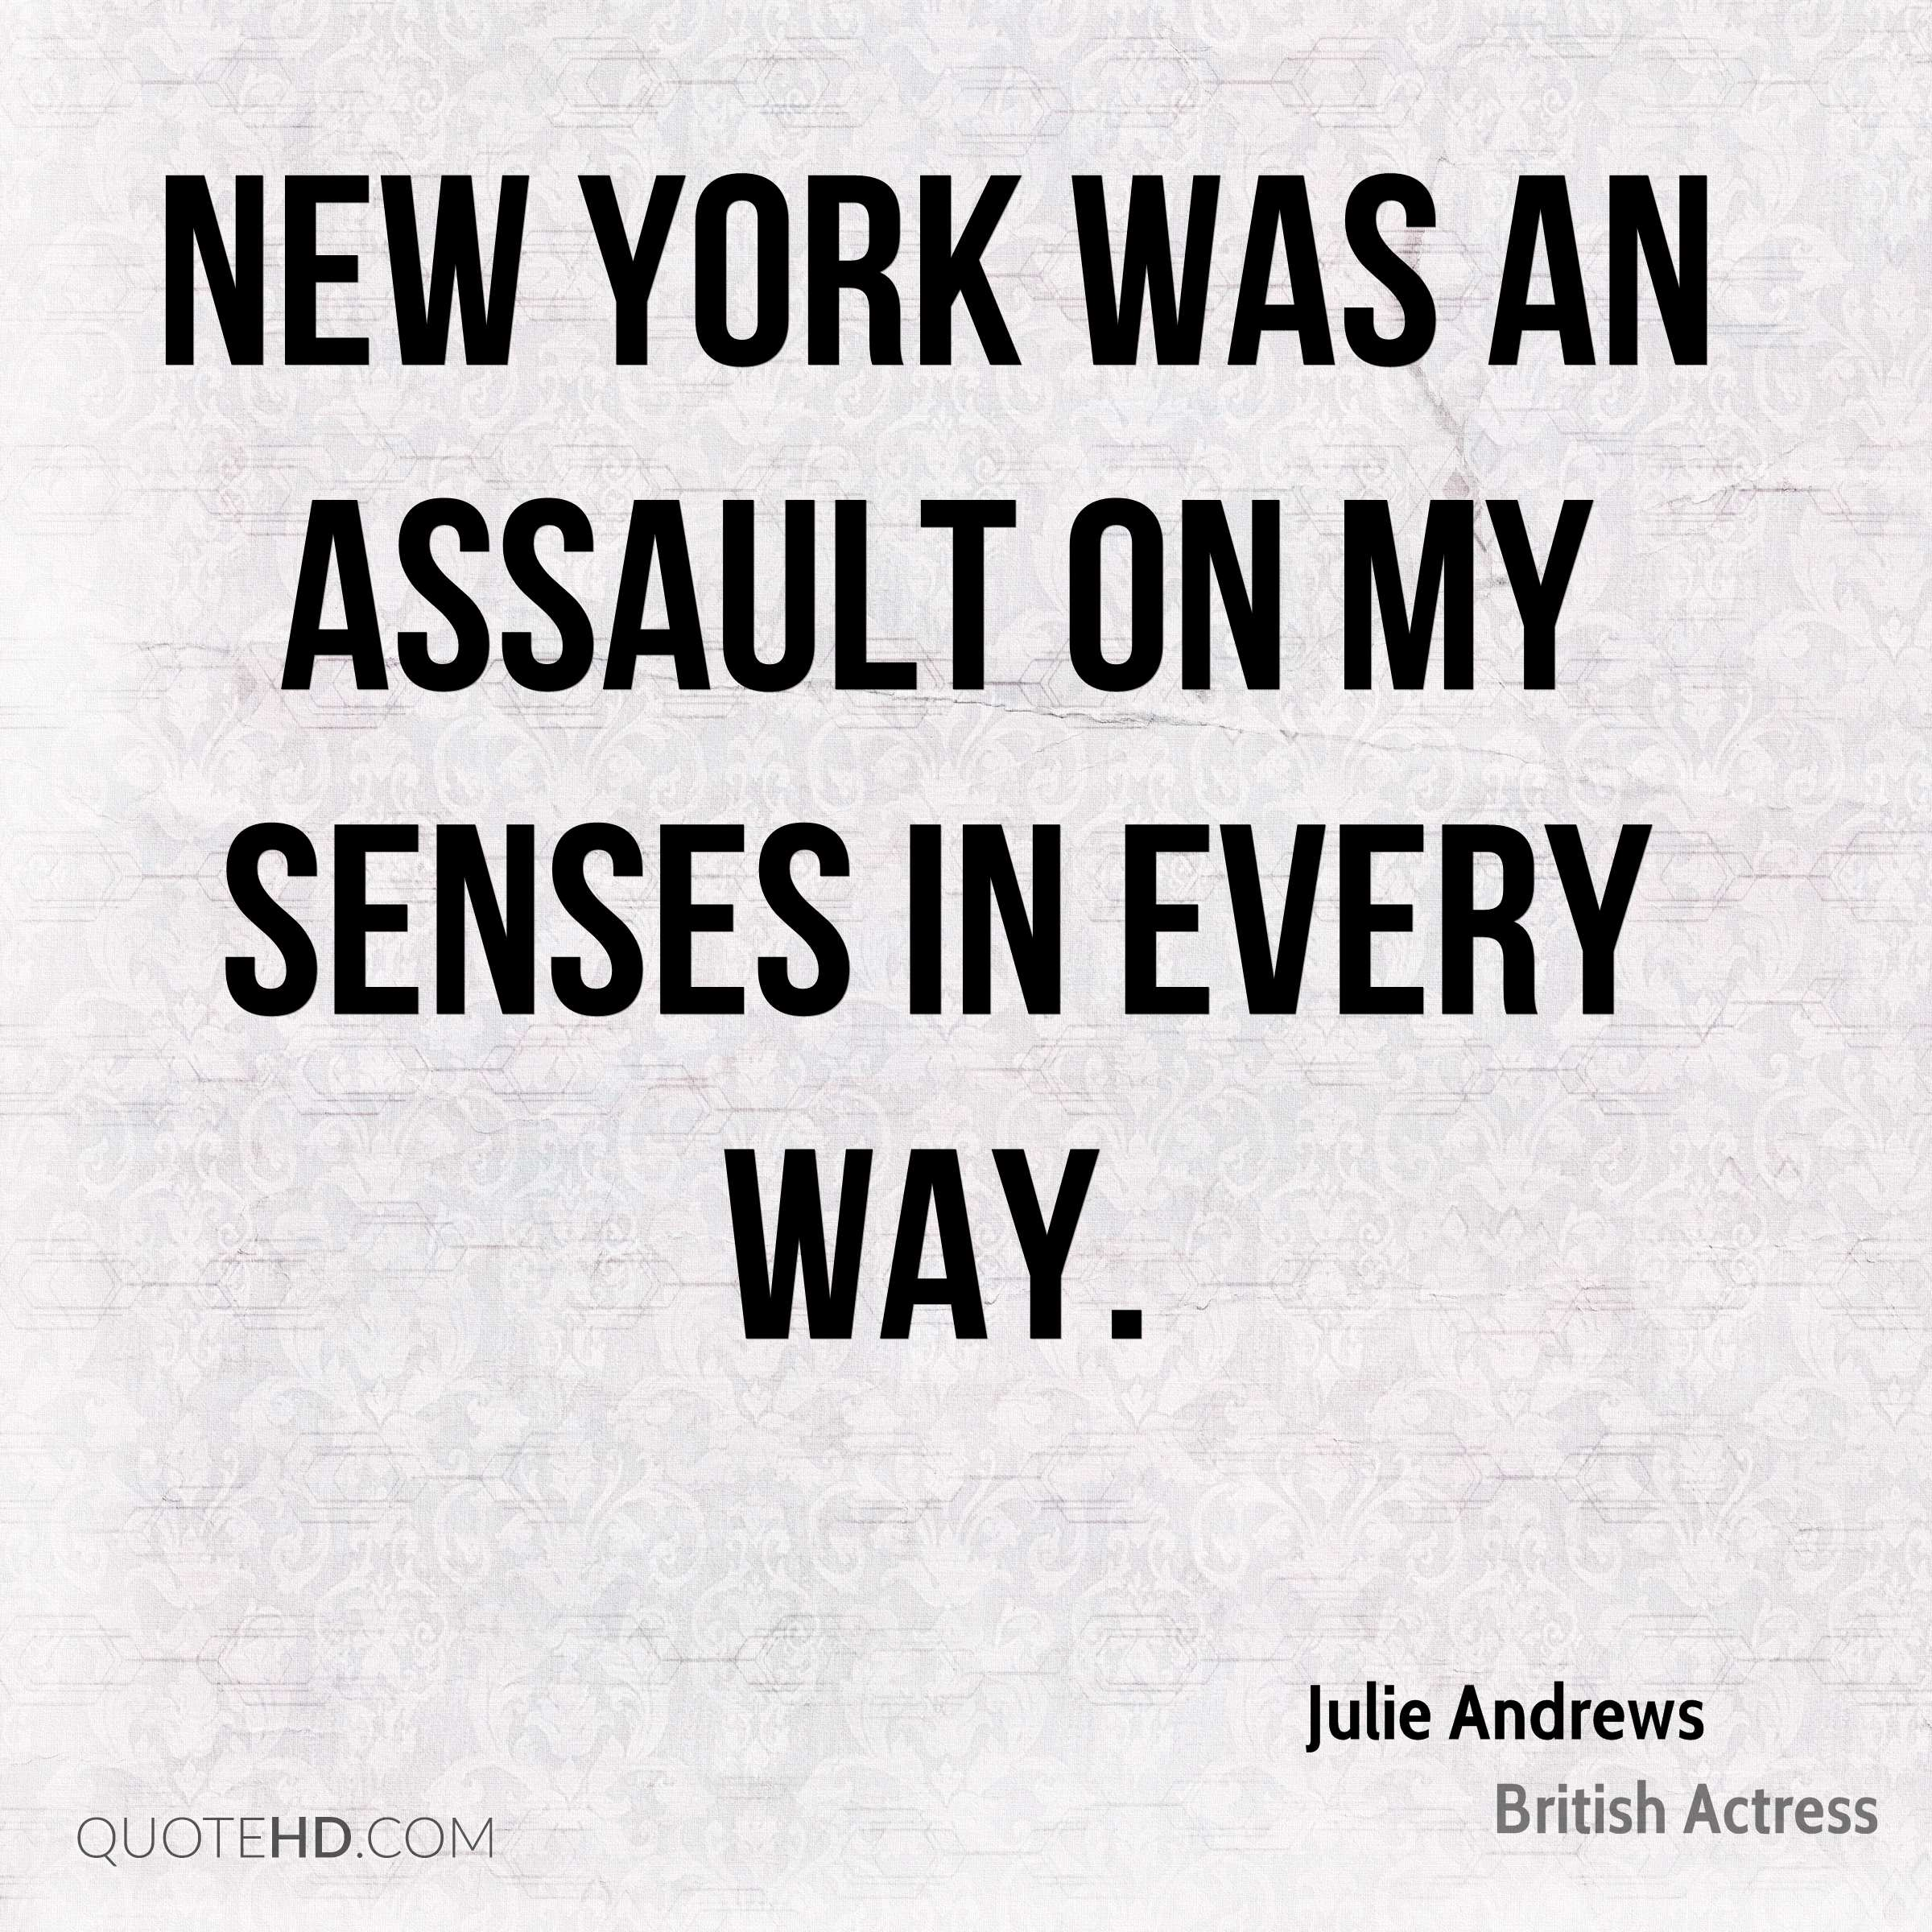 New York was an assault on my senses in every way.